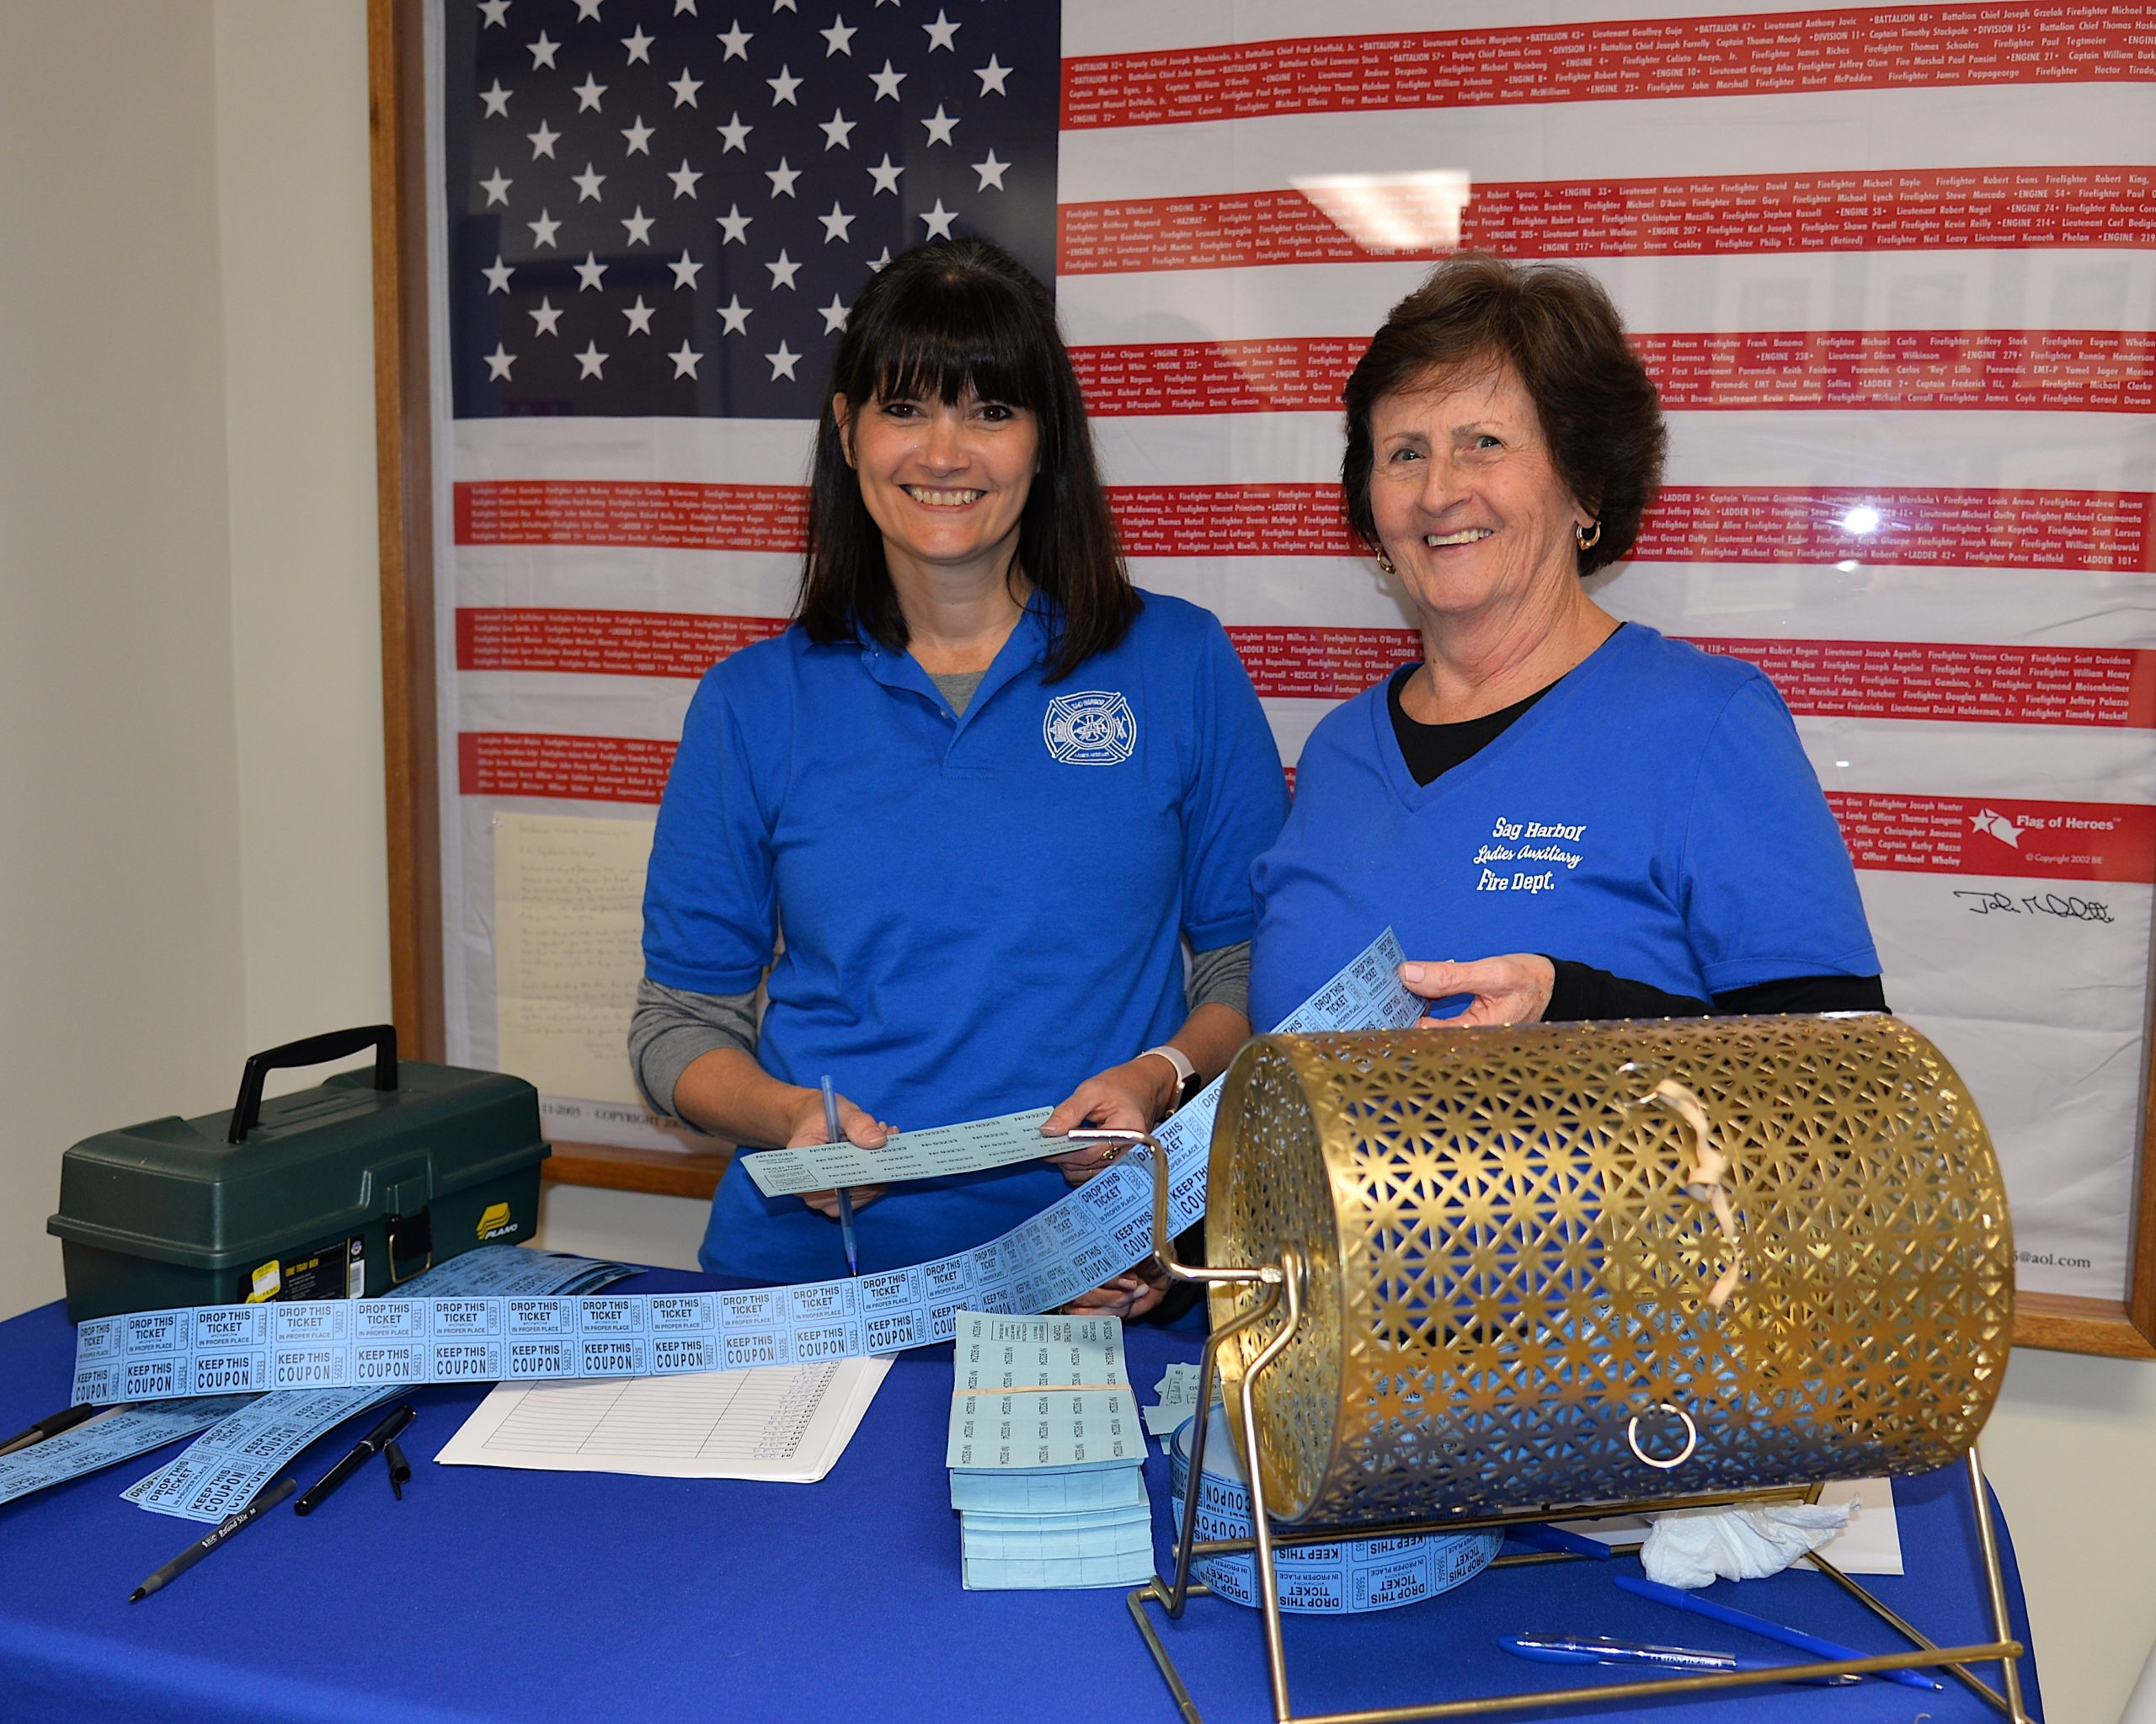 The Ladies Auxilliary of the Sag Harbor Fire Department hosted a holiday sale on Friday. Jody Miller and Betsy Remkus of the Ladies Auxilliary were in charge of the raffle table. KYRIL BROMLEY